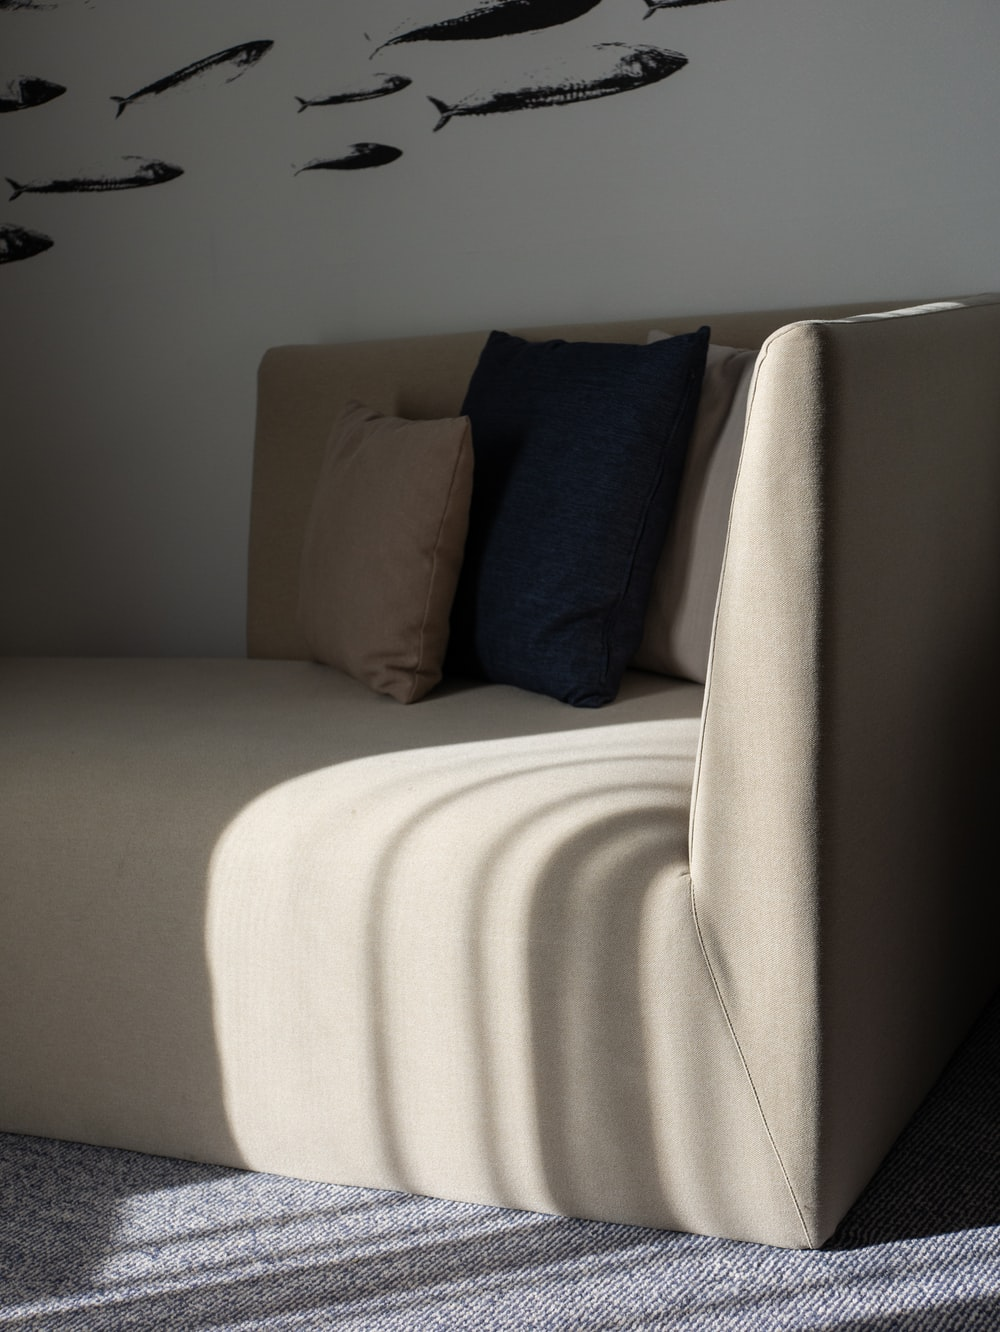 square white and black throw pillows on white fabric couch